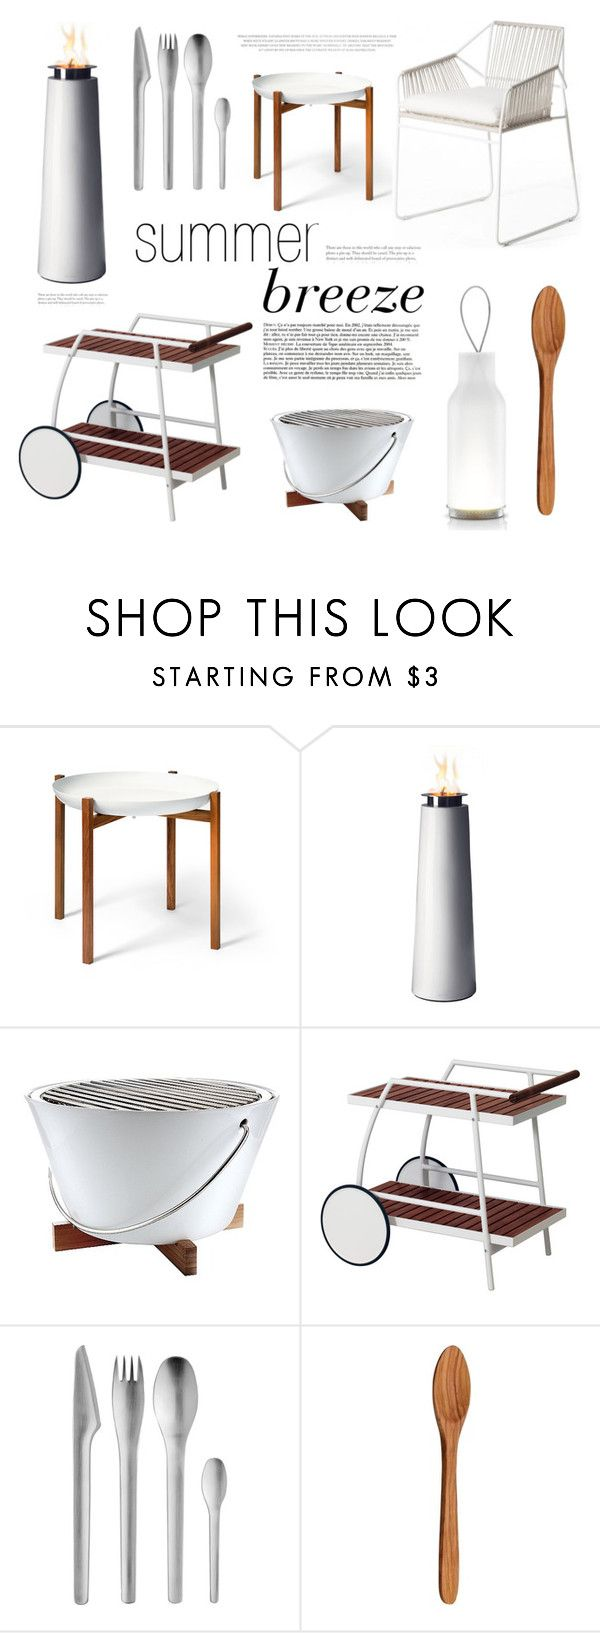 """""""white summer breeze"""" by stebi ❤ liked on Polyvore featuring interior, interiors, interior design, home, home decor, interior decorating, Design House Stockholm, Menu, Eva Solo and Stelton"""